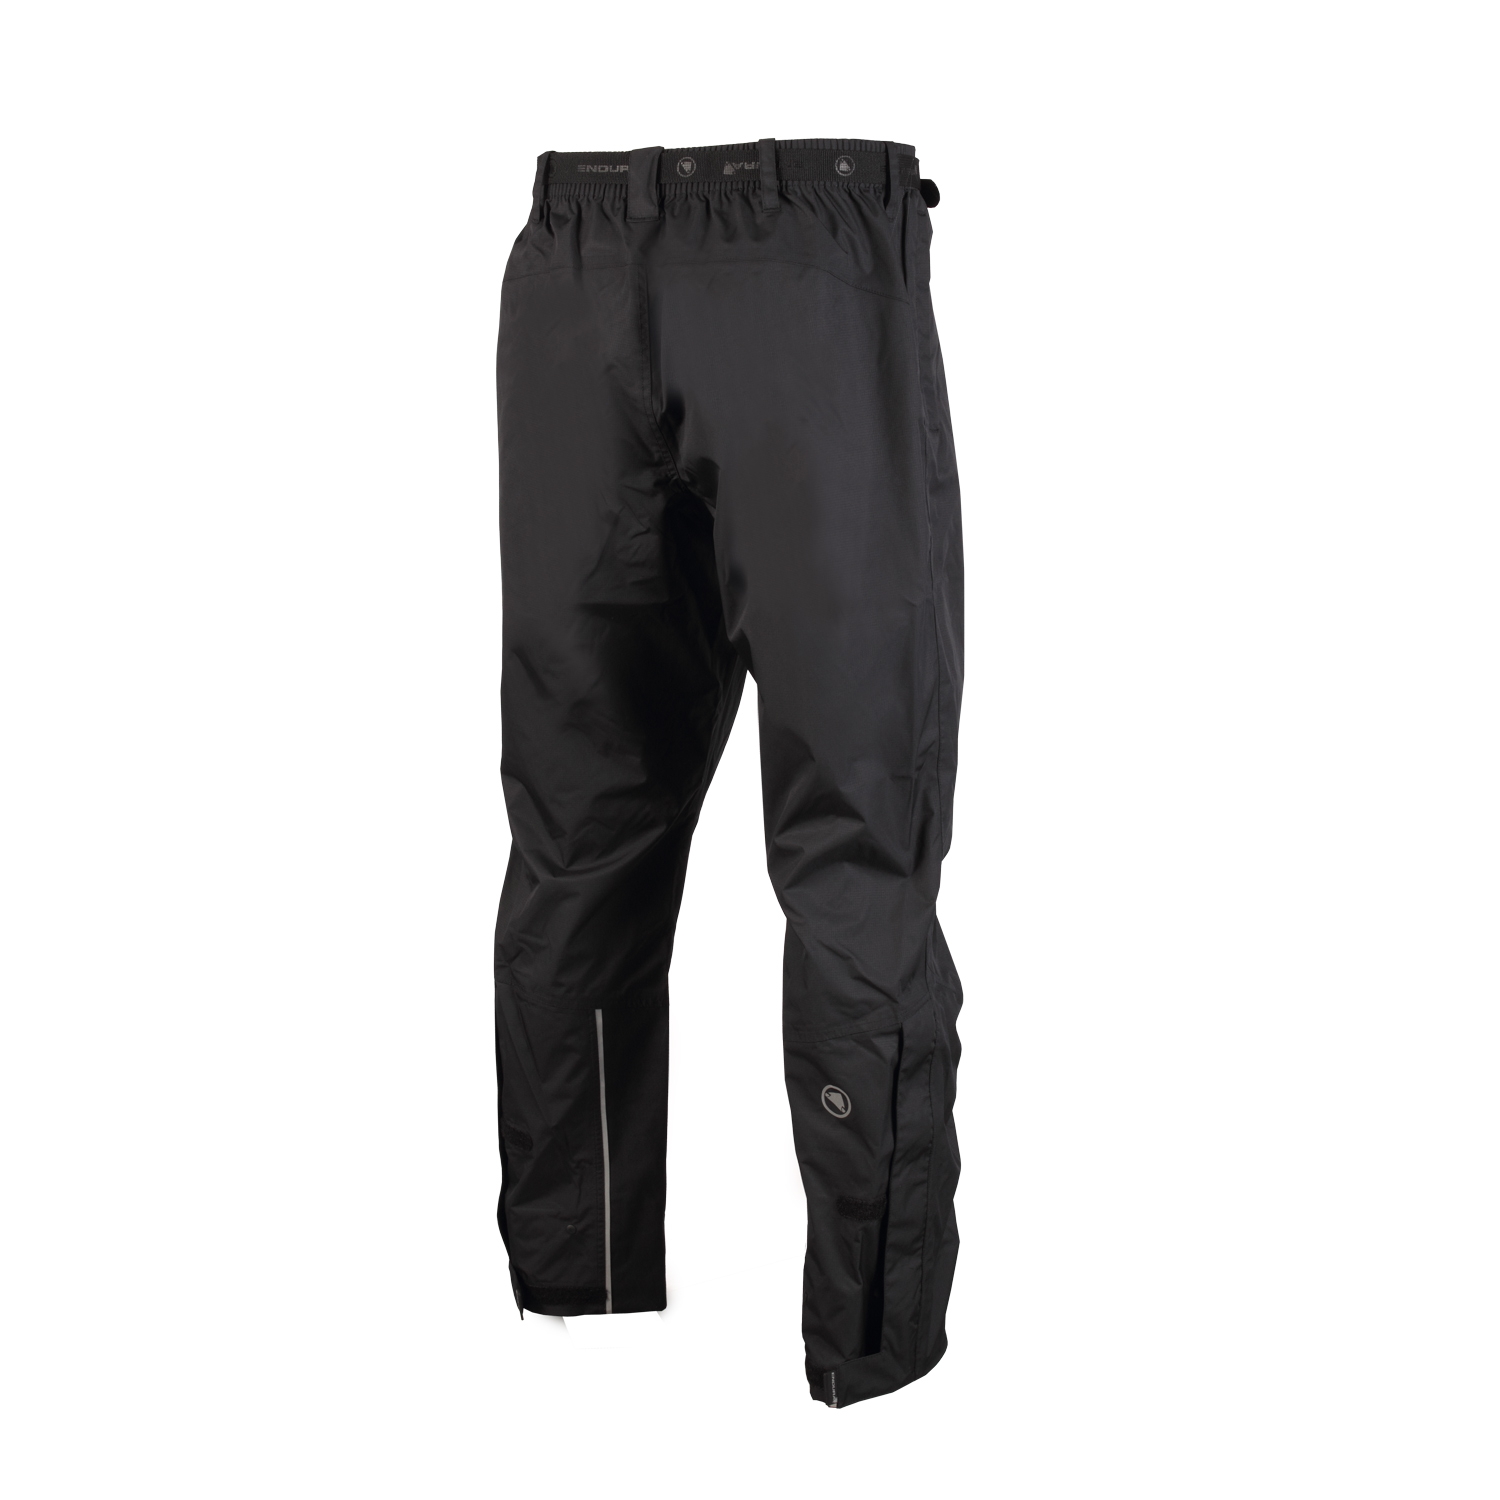 Gridlock II Trouser Black